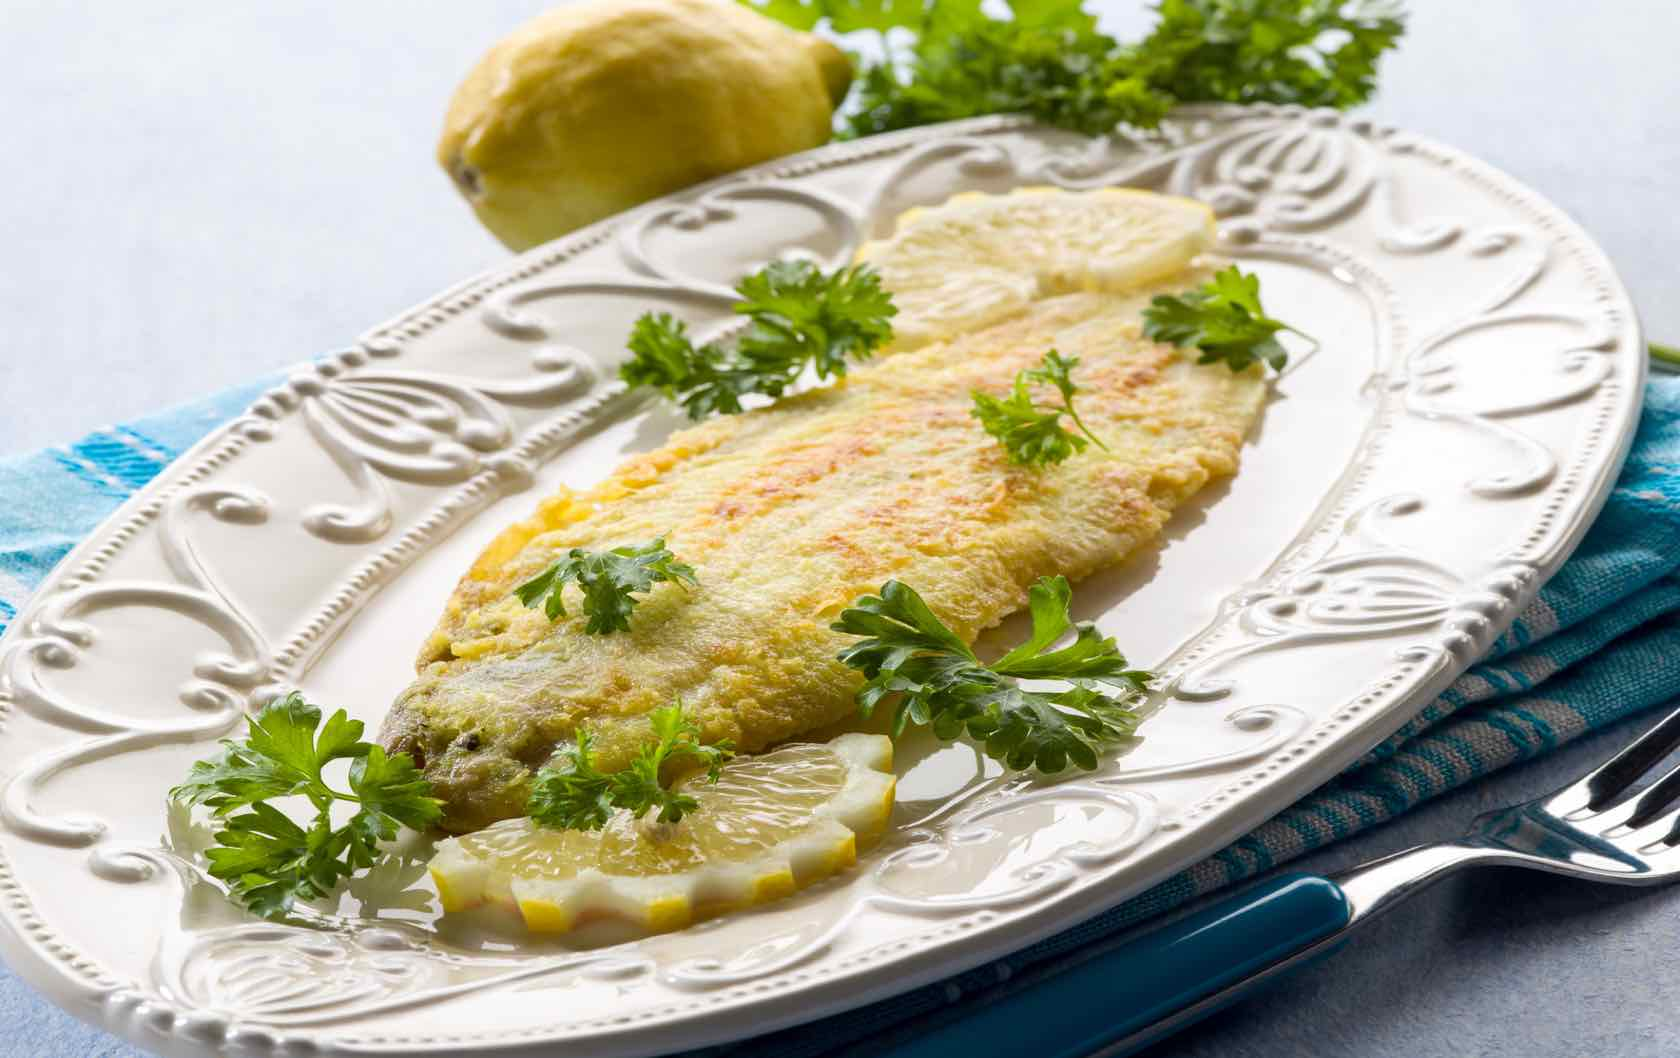 Classic Savory French Dishes Sole Meunière